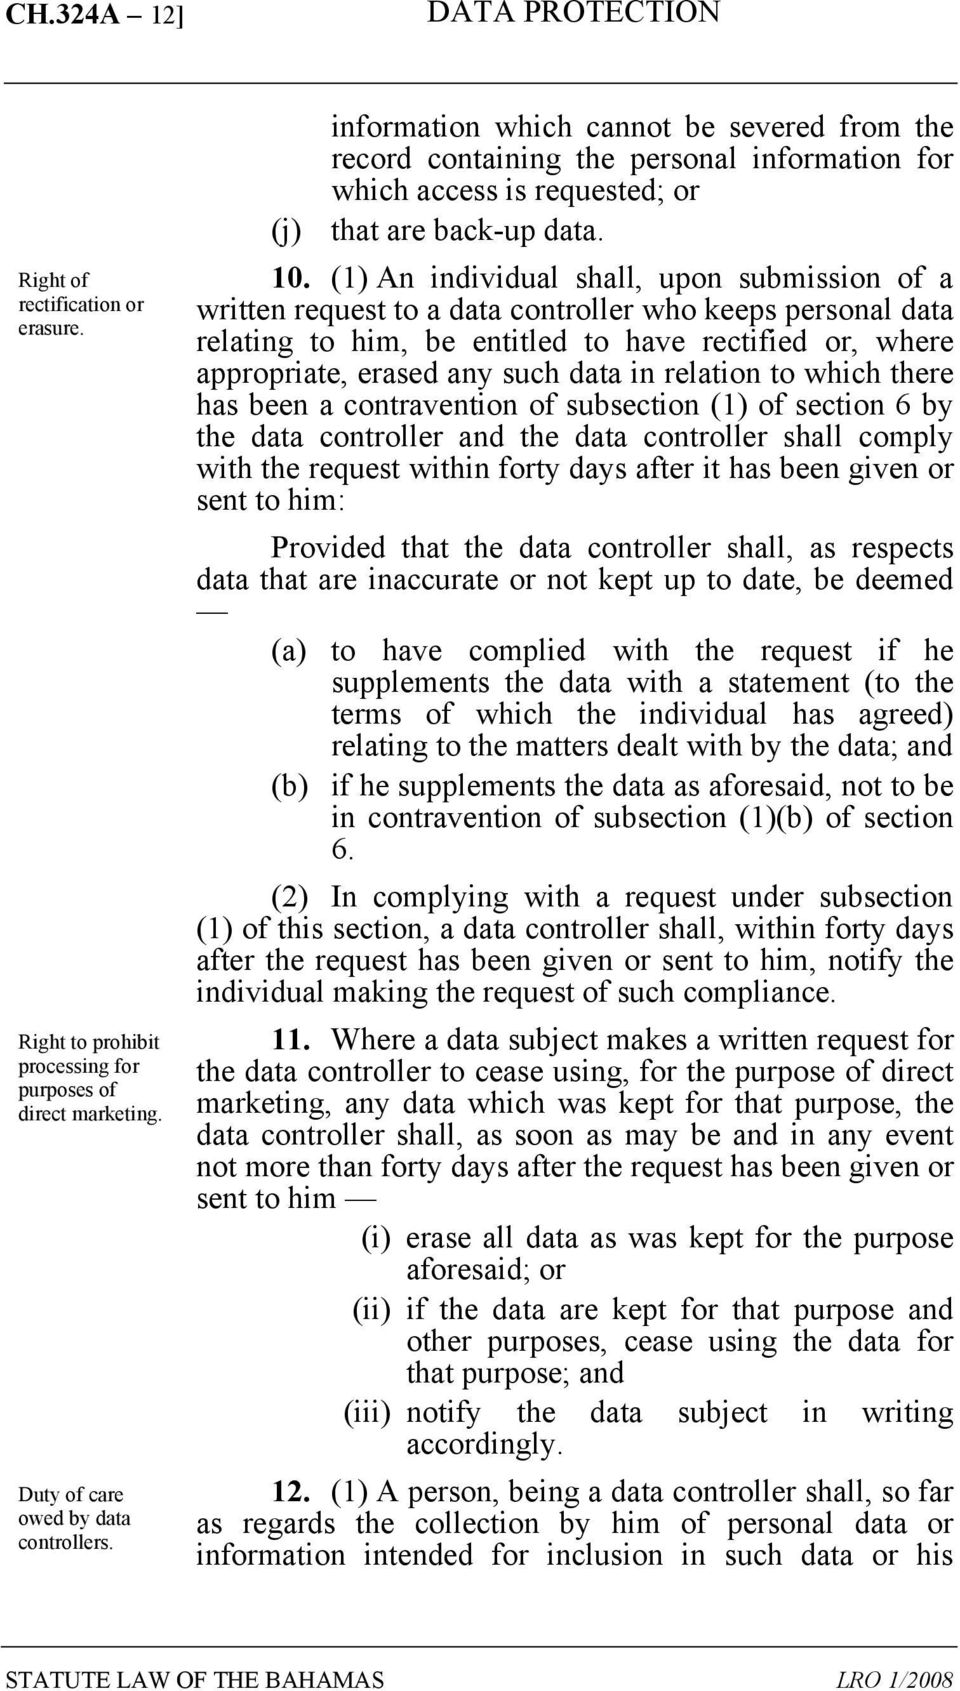 (1) An individual shall, upon submission of a written request to a data controller who keeps personal data relating to him, be entitled to have rectified or, where appropriate, erased any such data